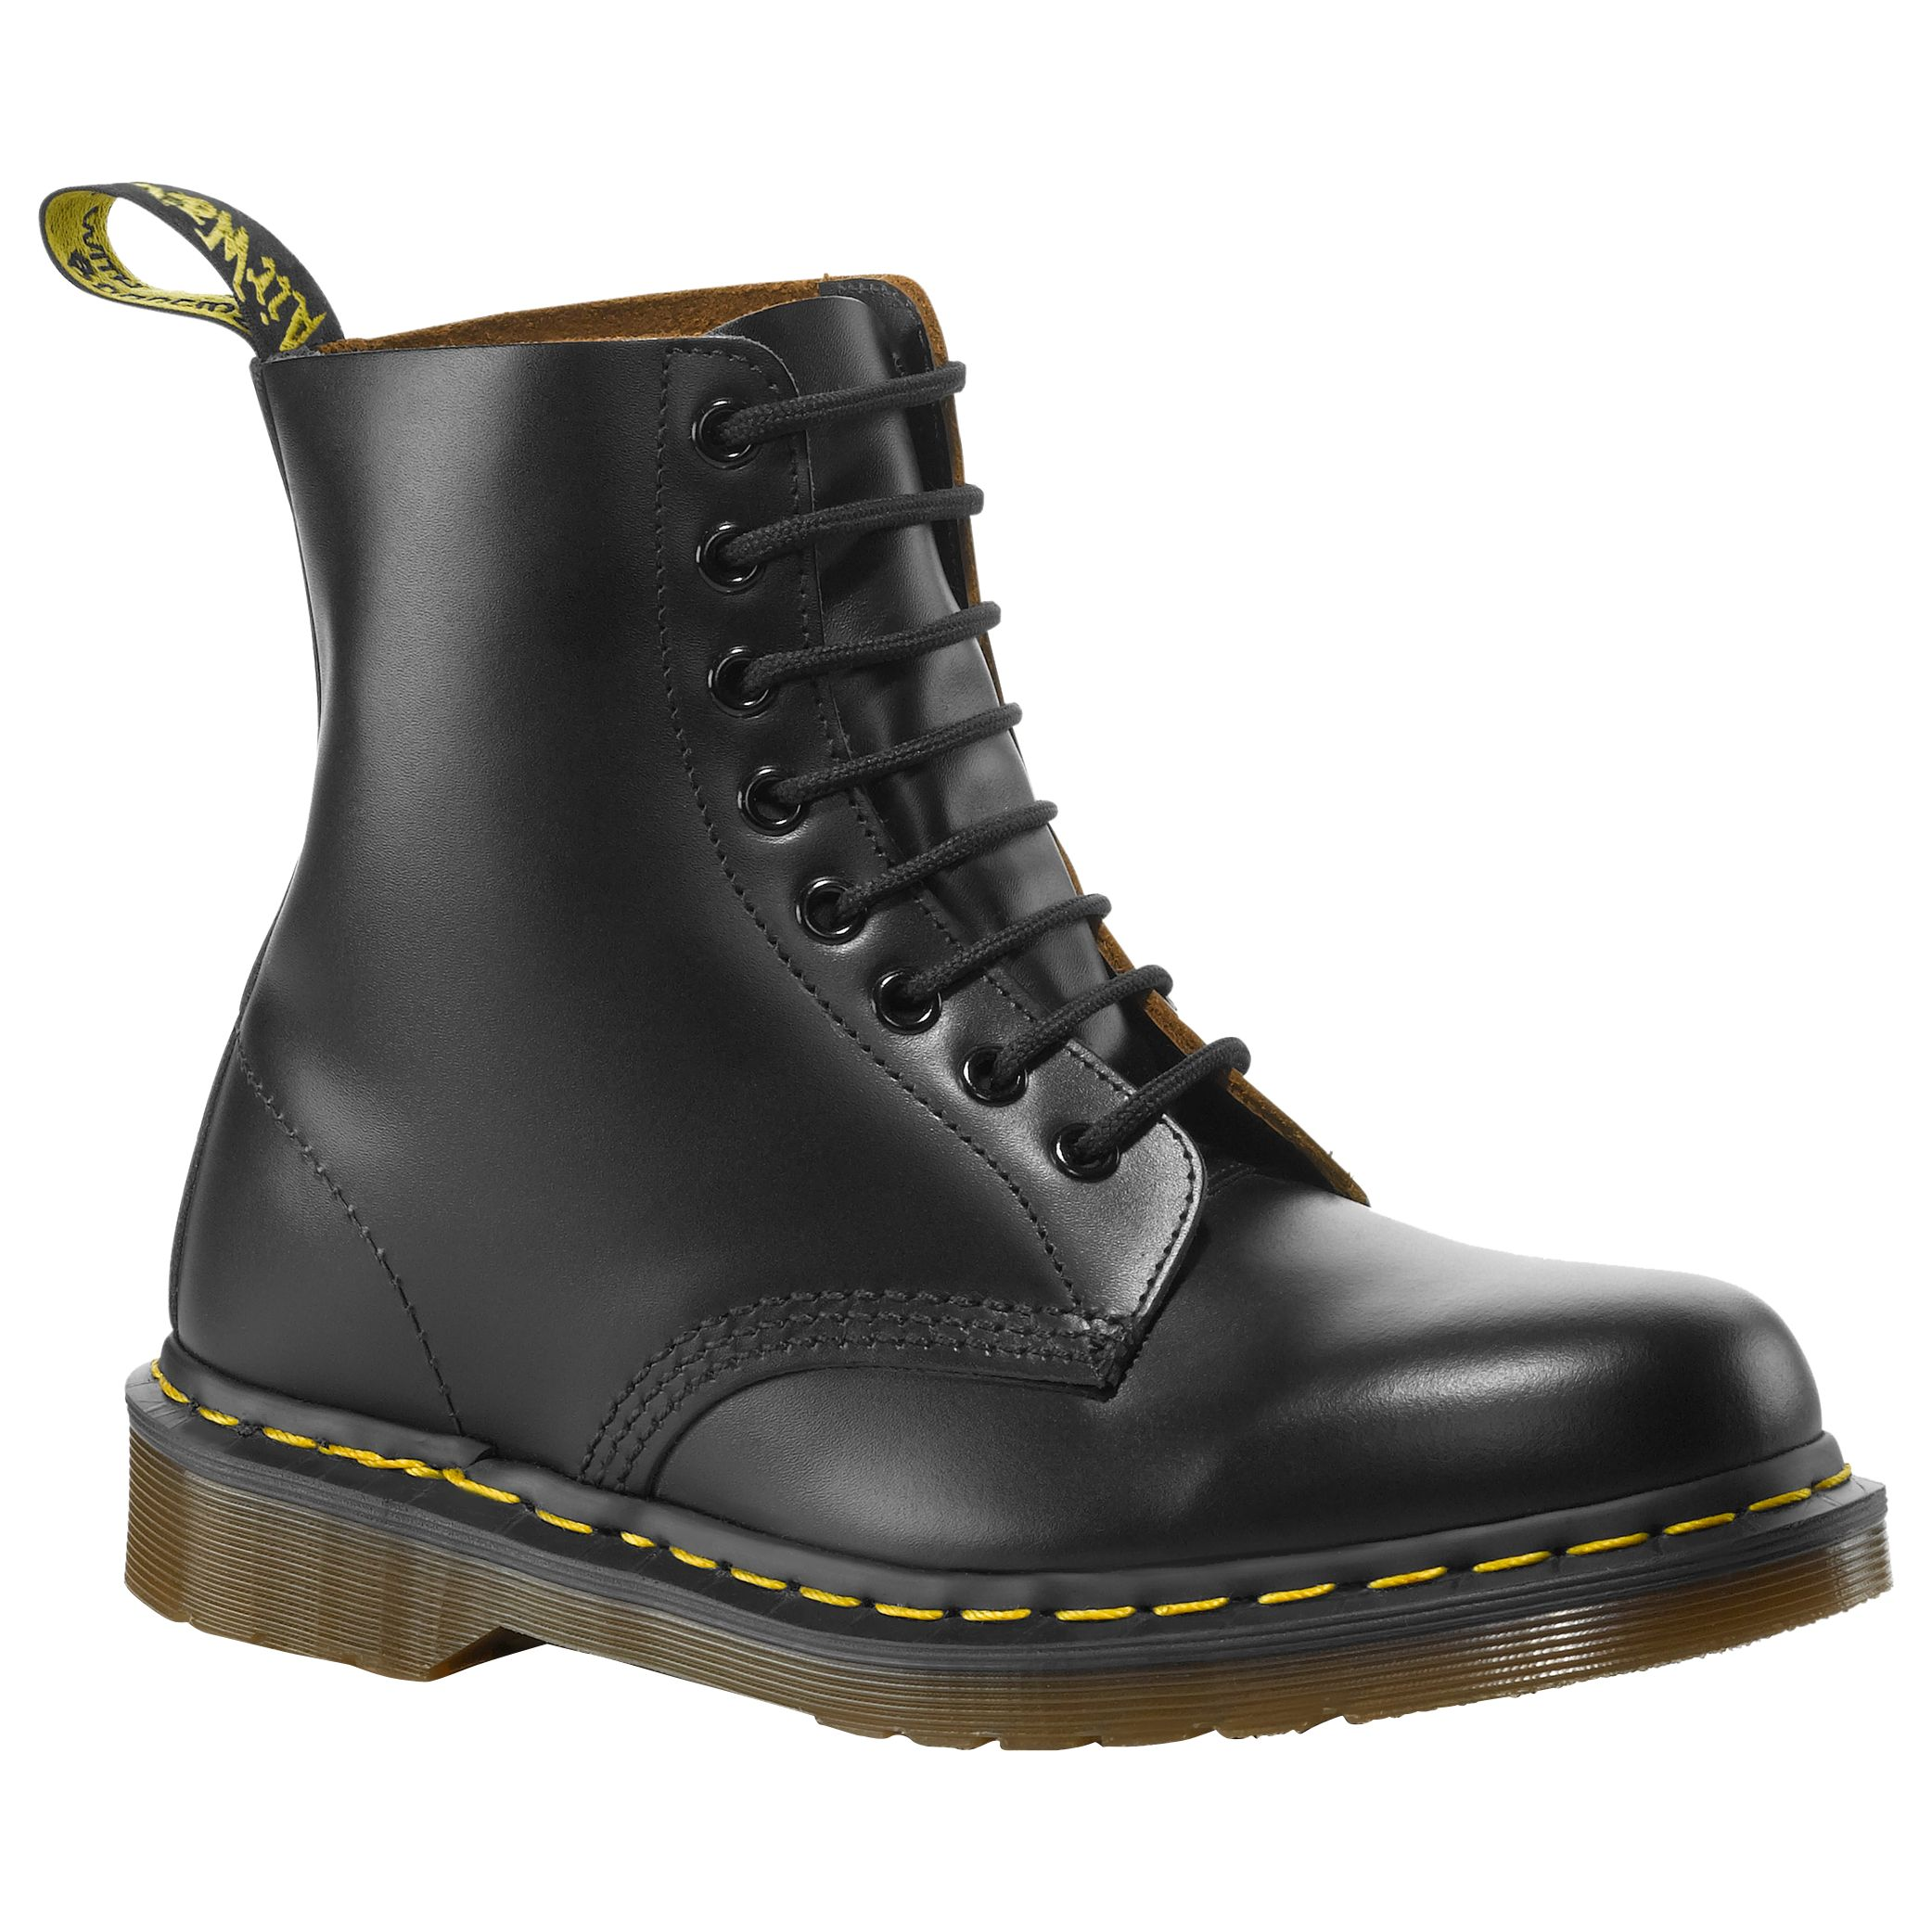 1fd02162ec4b Dr Martens Made In England 1460 Vintage Lace Up Boots at John Lewis    Partners